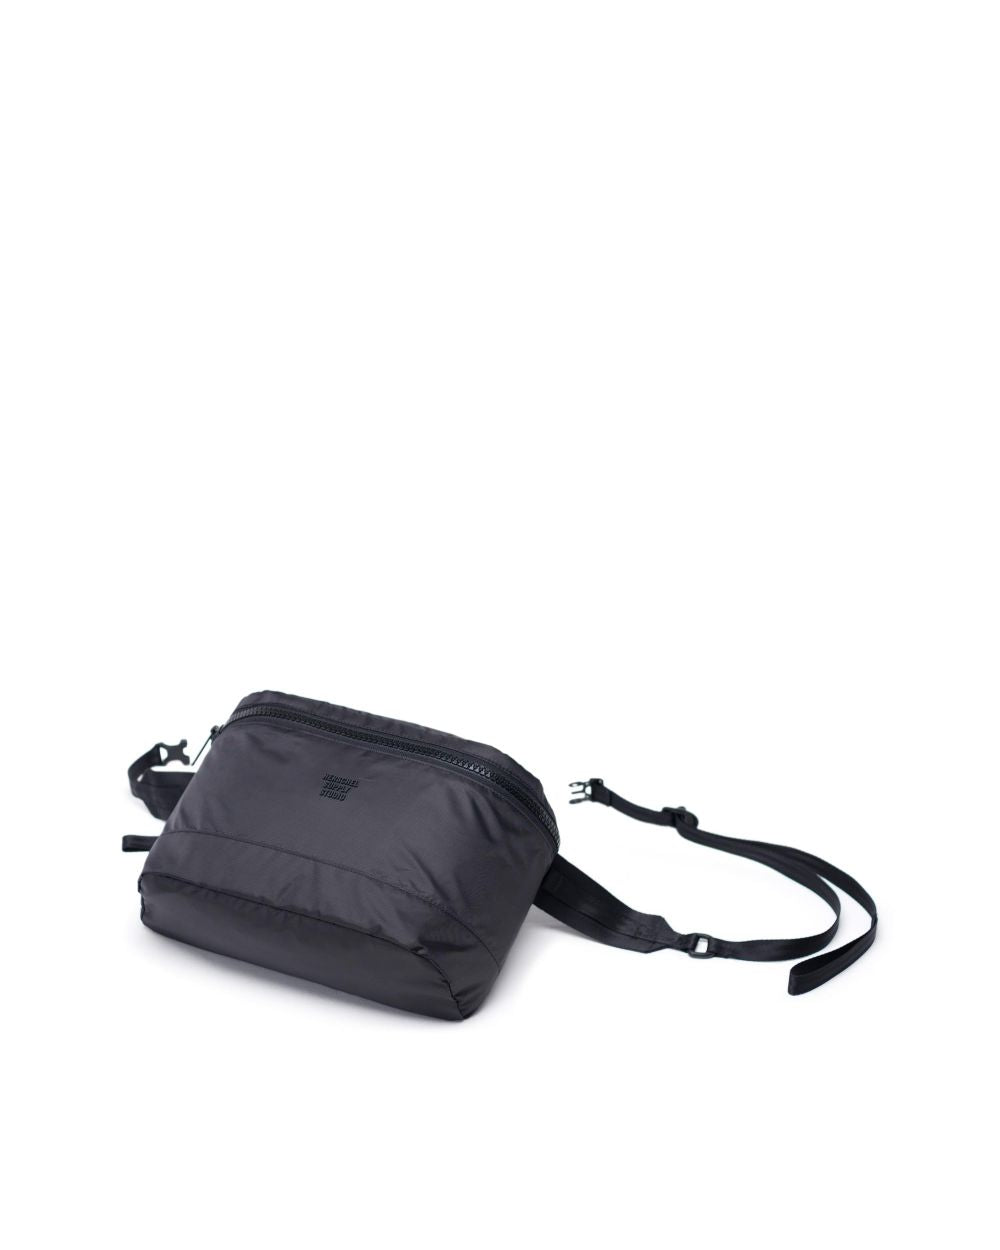 HS9 HIP PACK | STUDIO BLACK